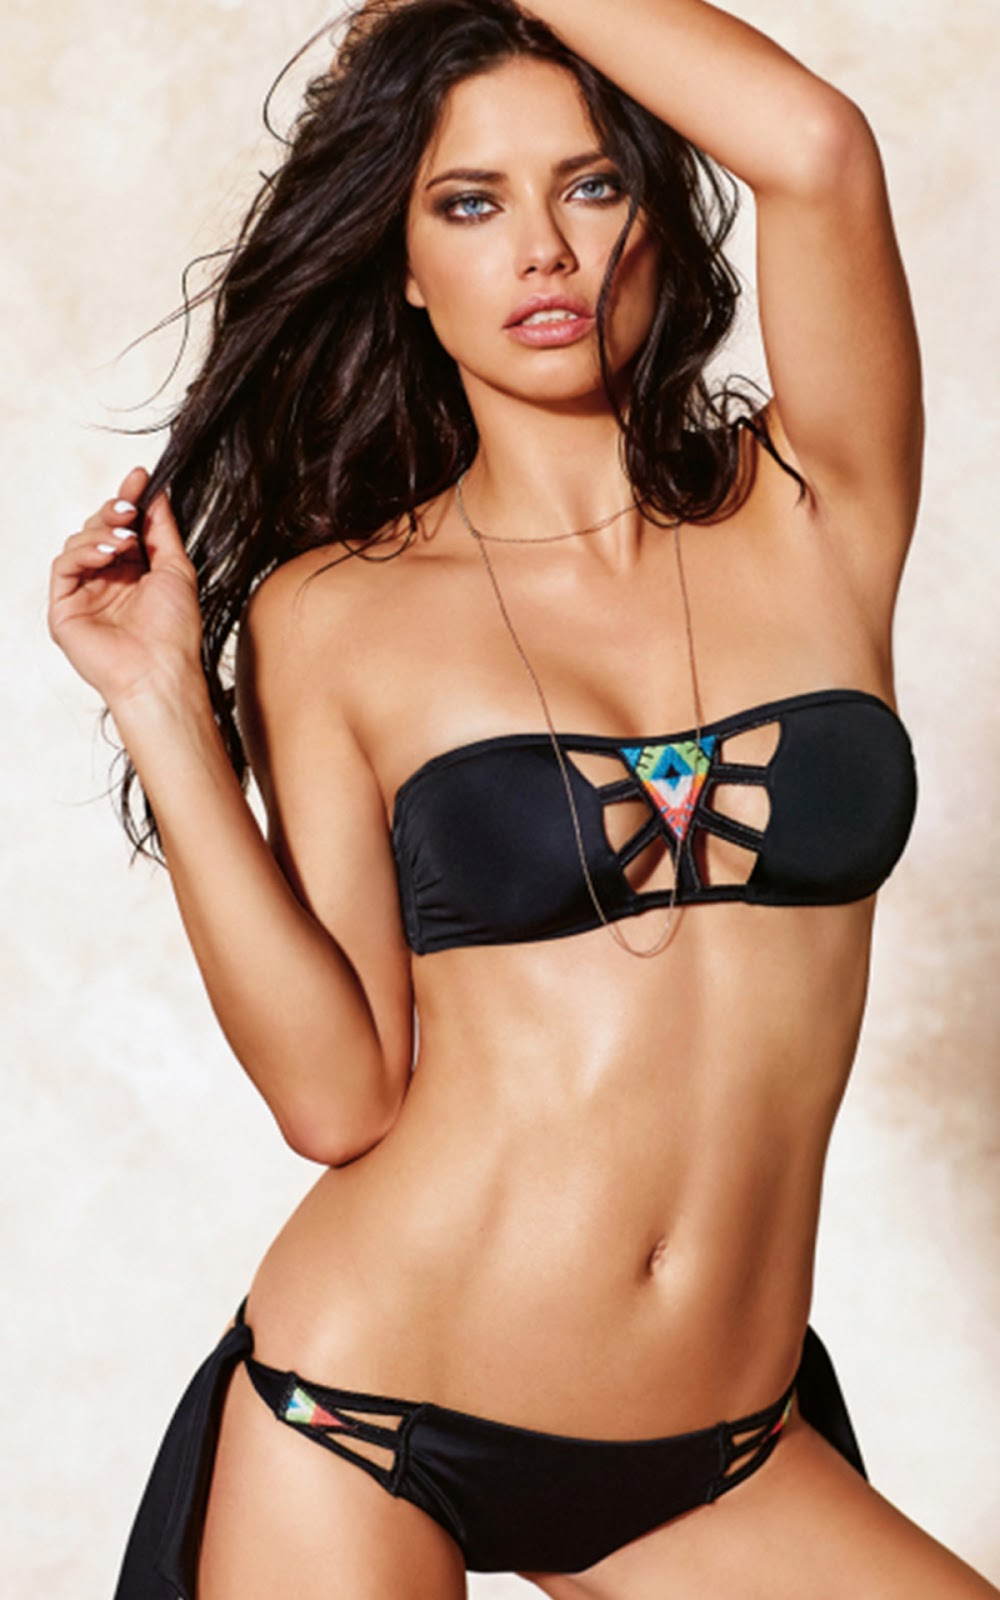 ADRIANA LIMA BIKINI Highlights from Calzedonia Swimwear 2016 Campaign